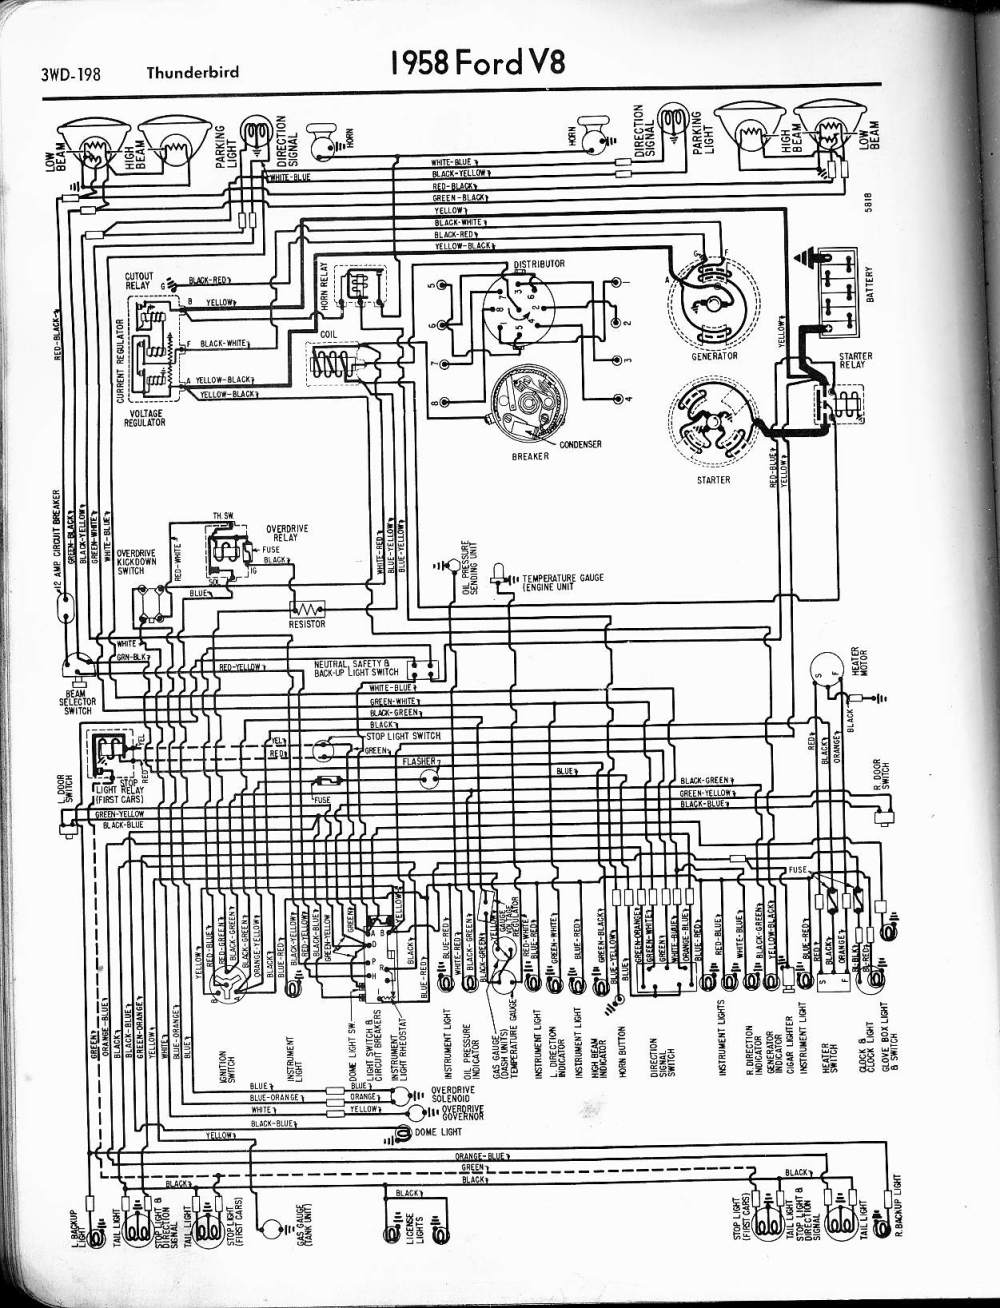 medium resolution of 1958 ford wiring diagram wiring diagram third level 1946 ford truck wiring diagram 1958 ford truck wiring diagram